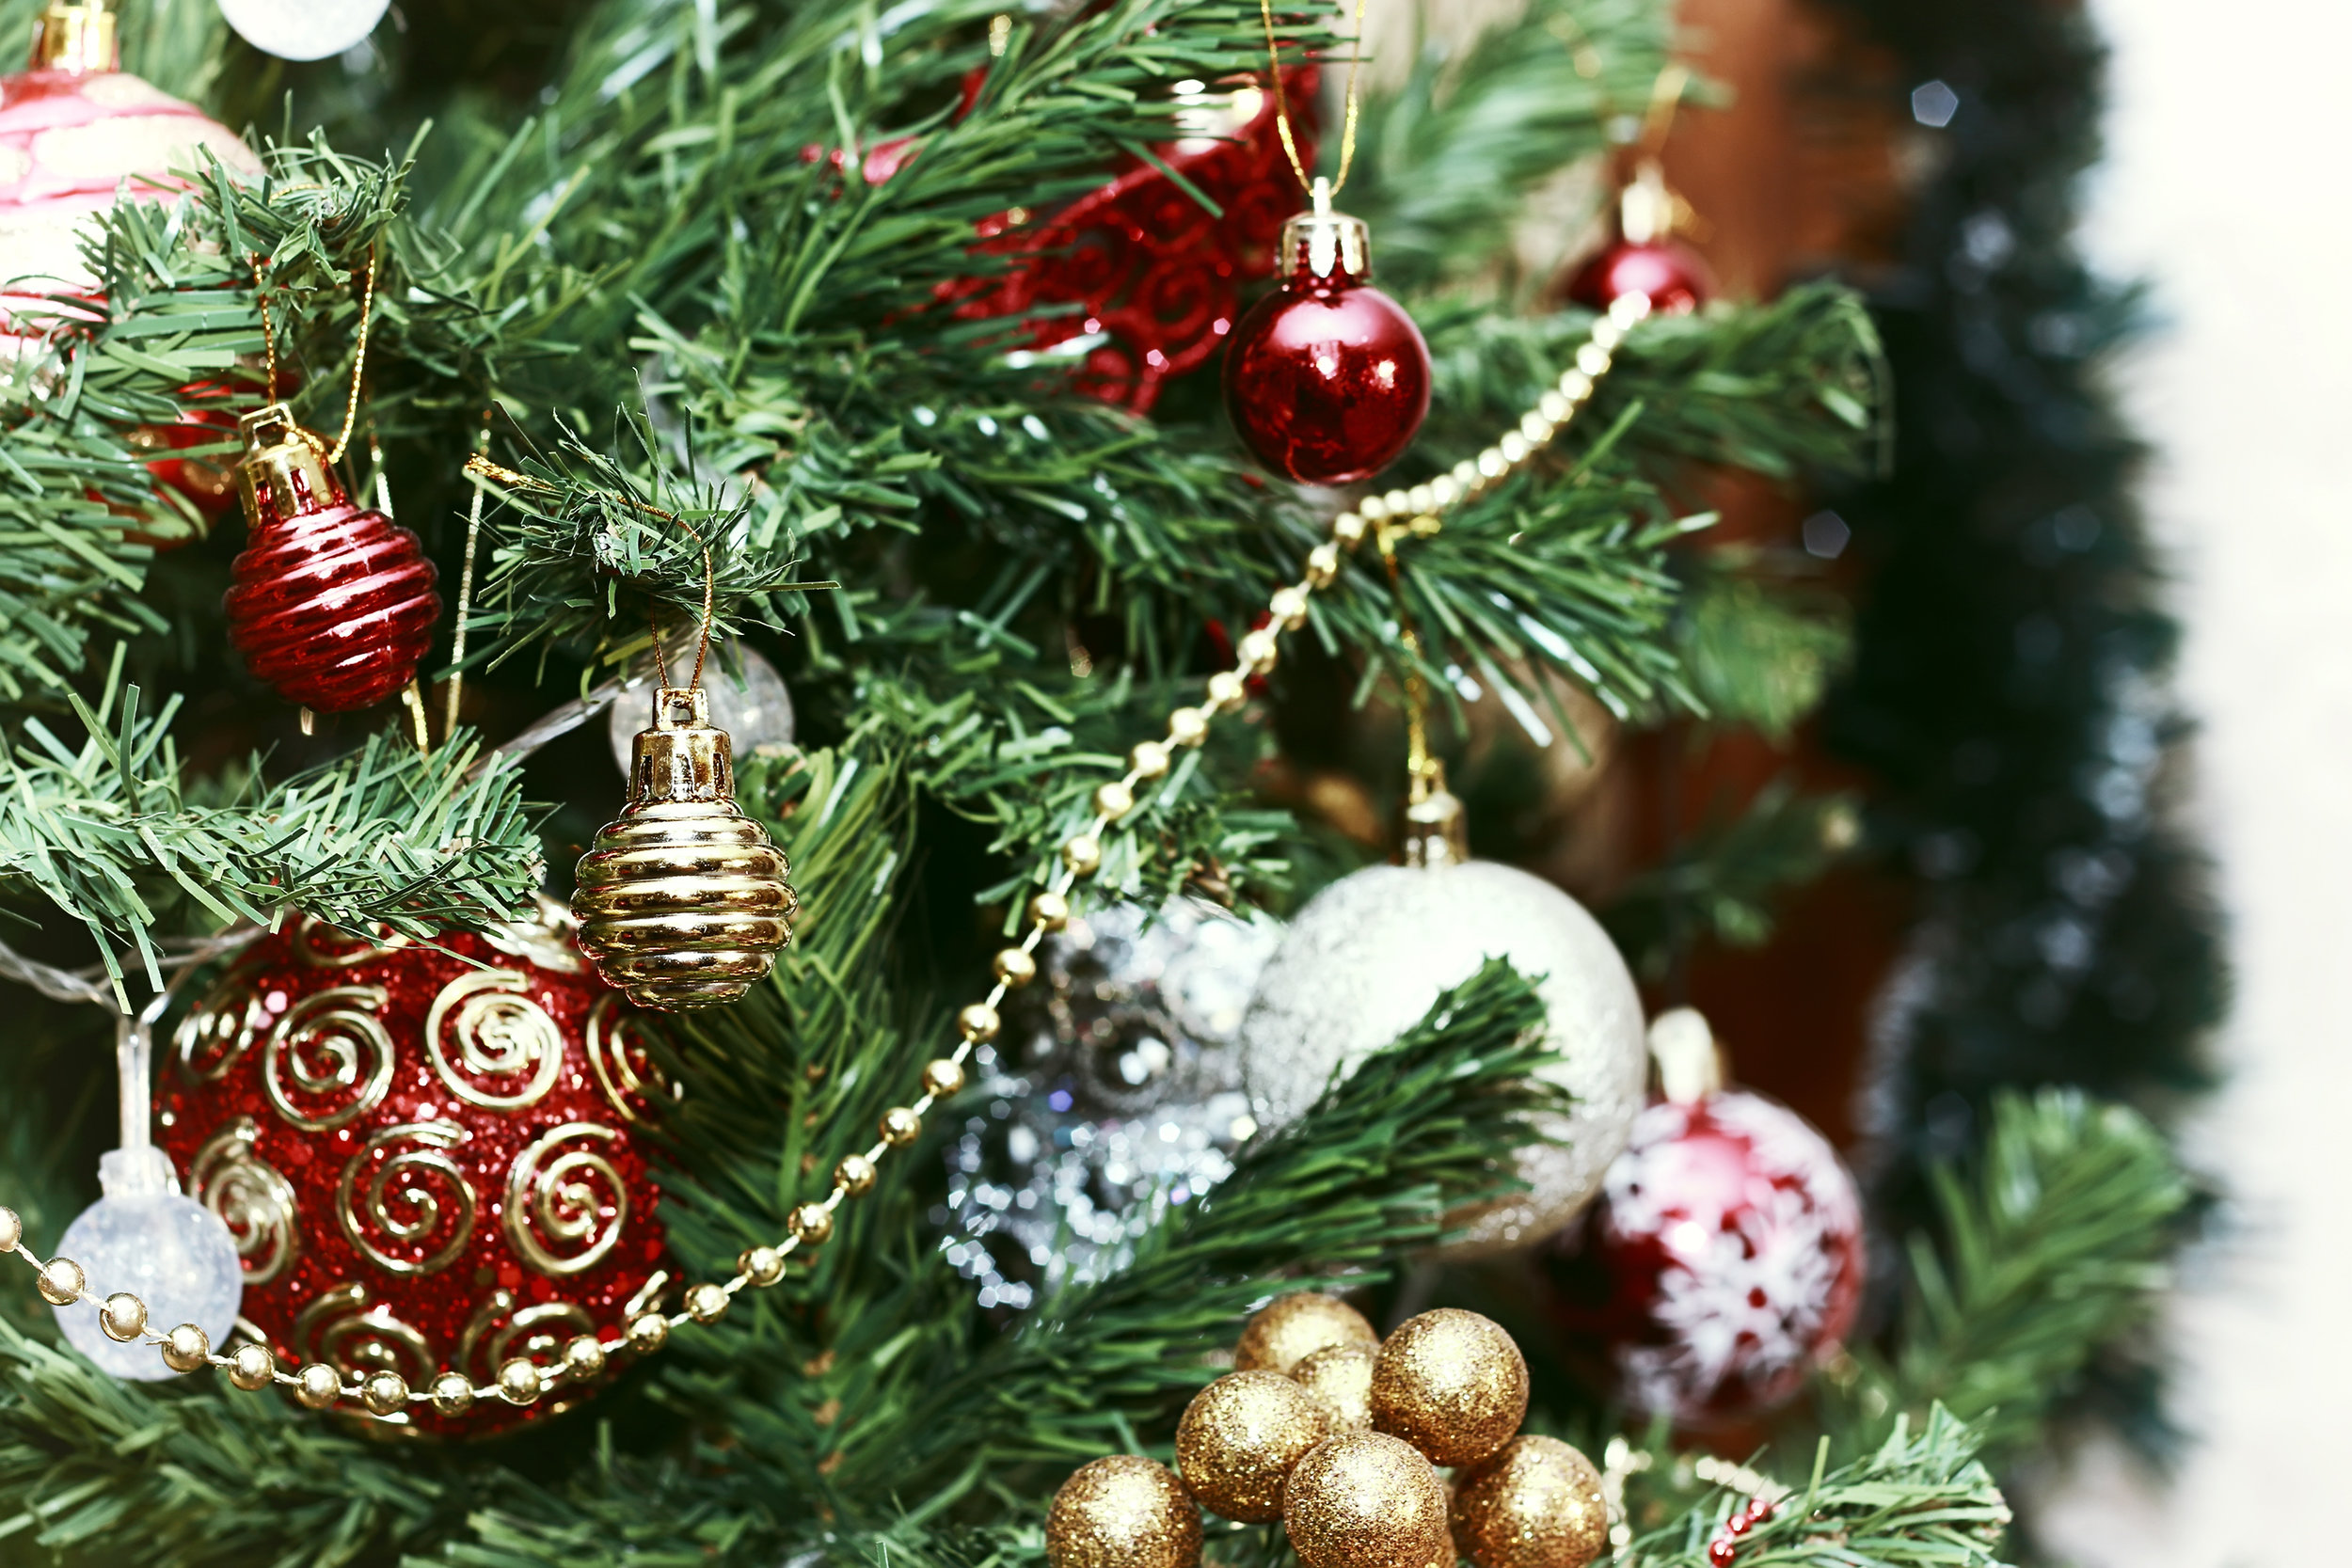 christmas-tree-decor-macro-658254526_2704x1803.jpeg